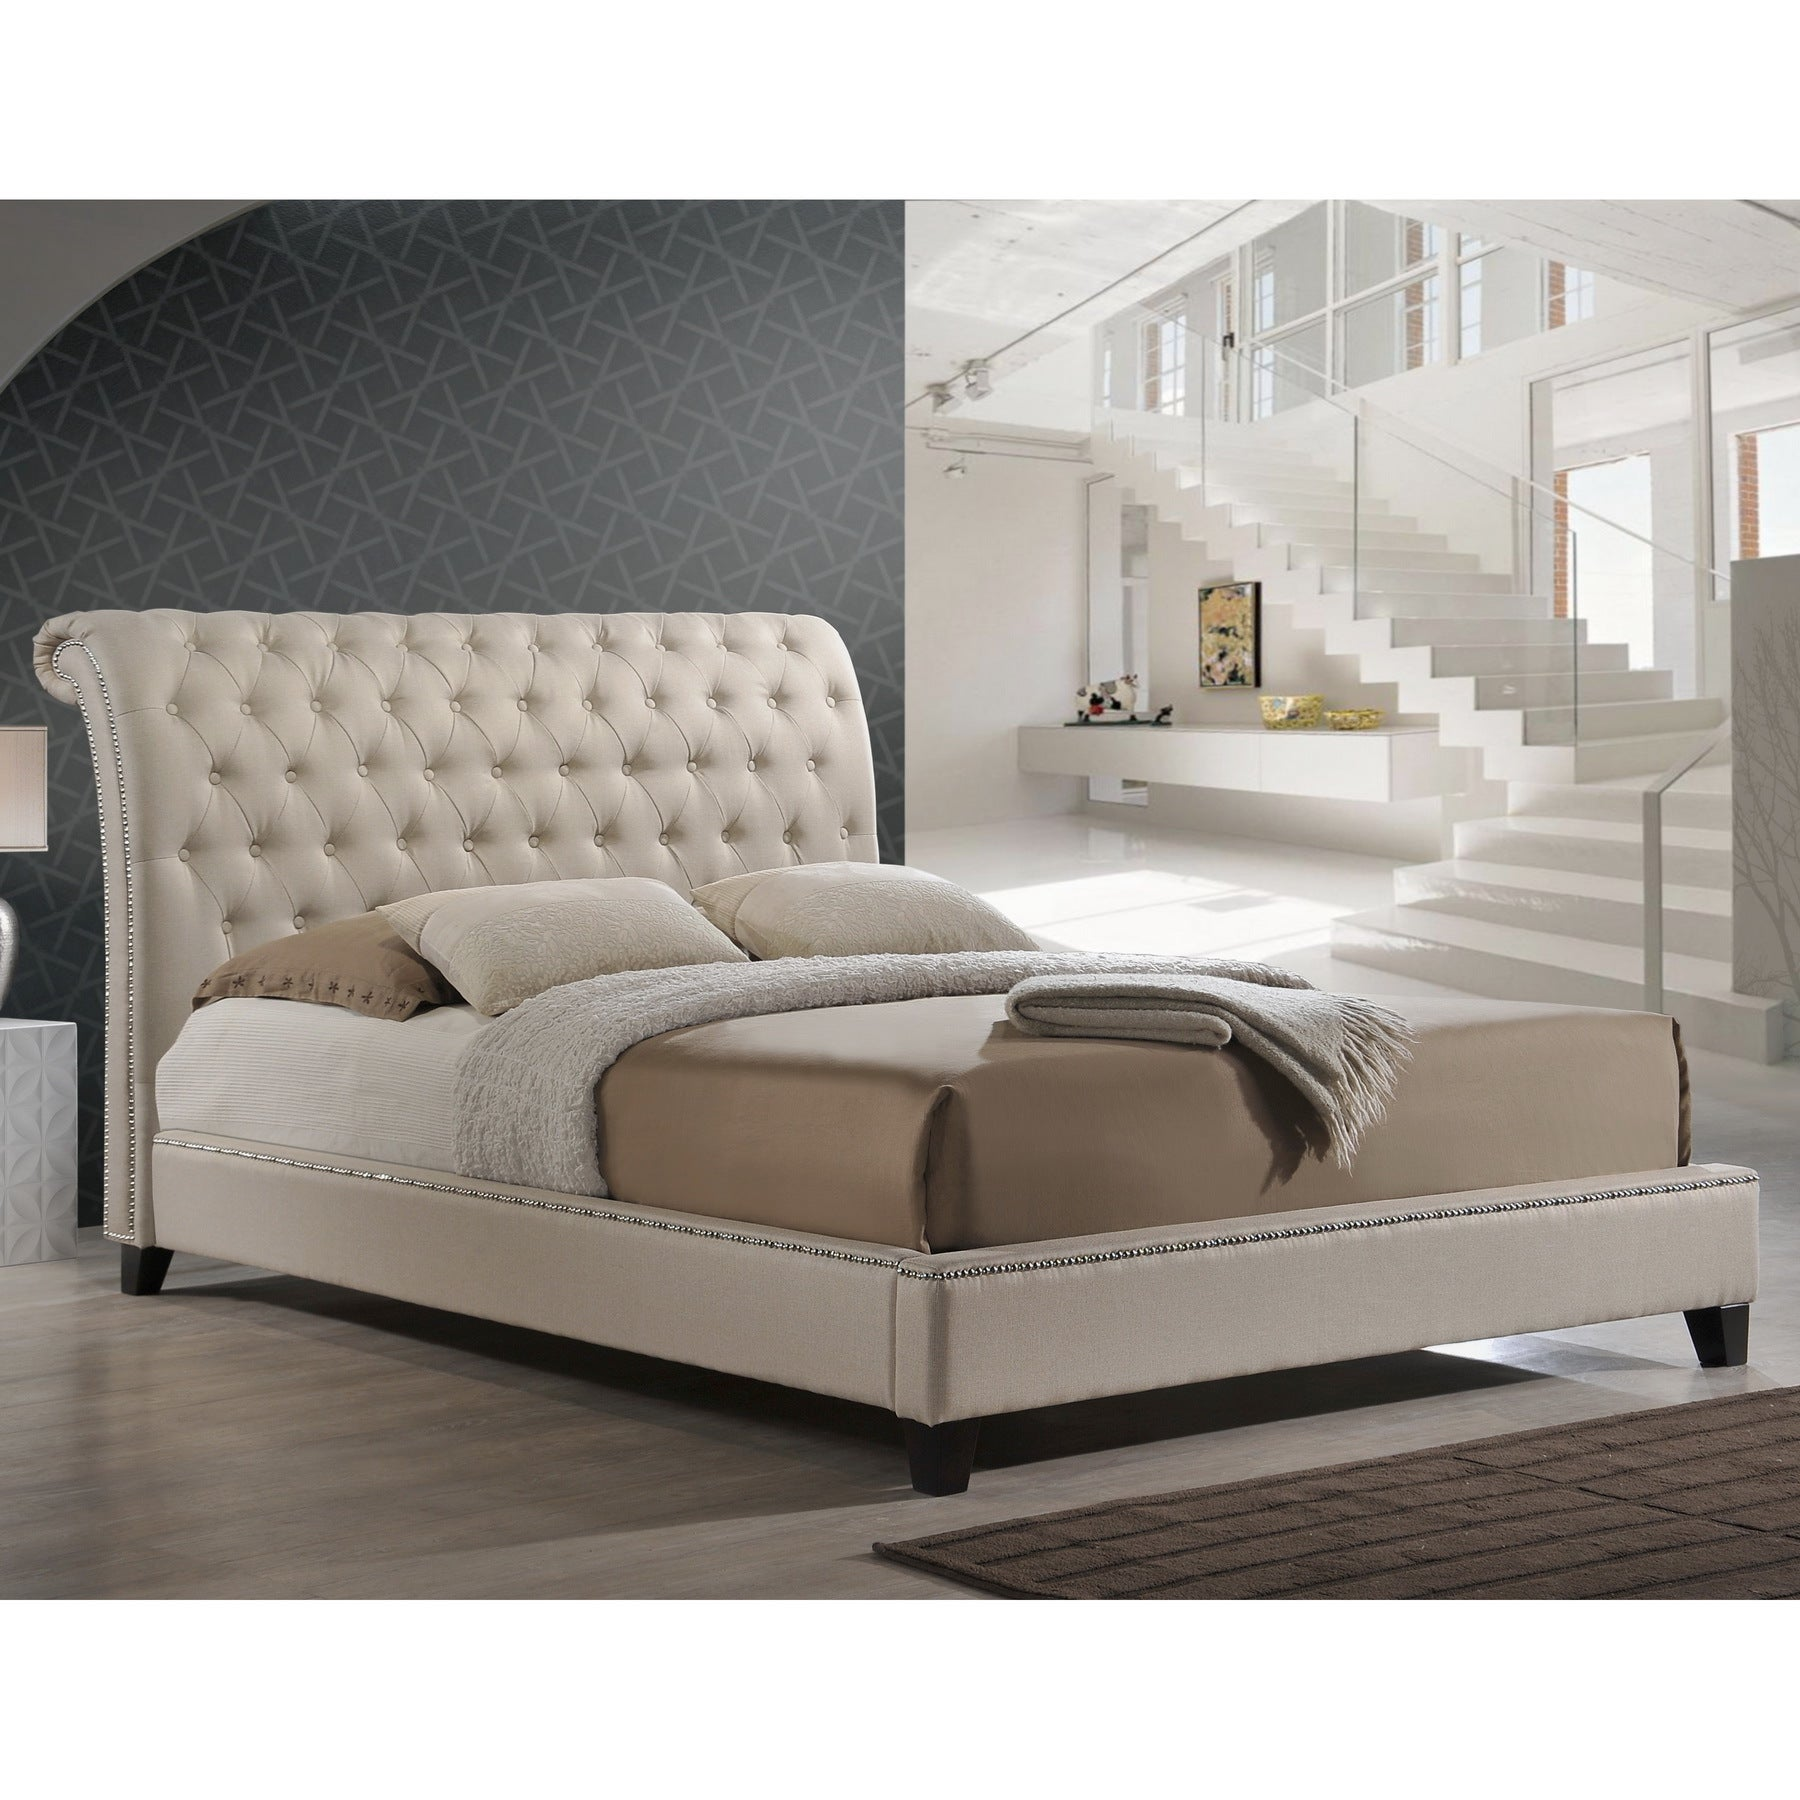 design ja upholstered bedroom string beauteous wrought slipcovered beds headboards size bed full king sets custom ikea cool lights headboard wicker for expressions apartments one eyes ideas